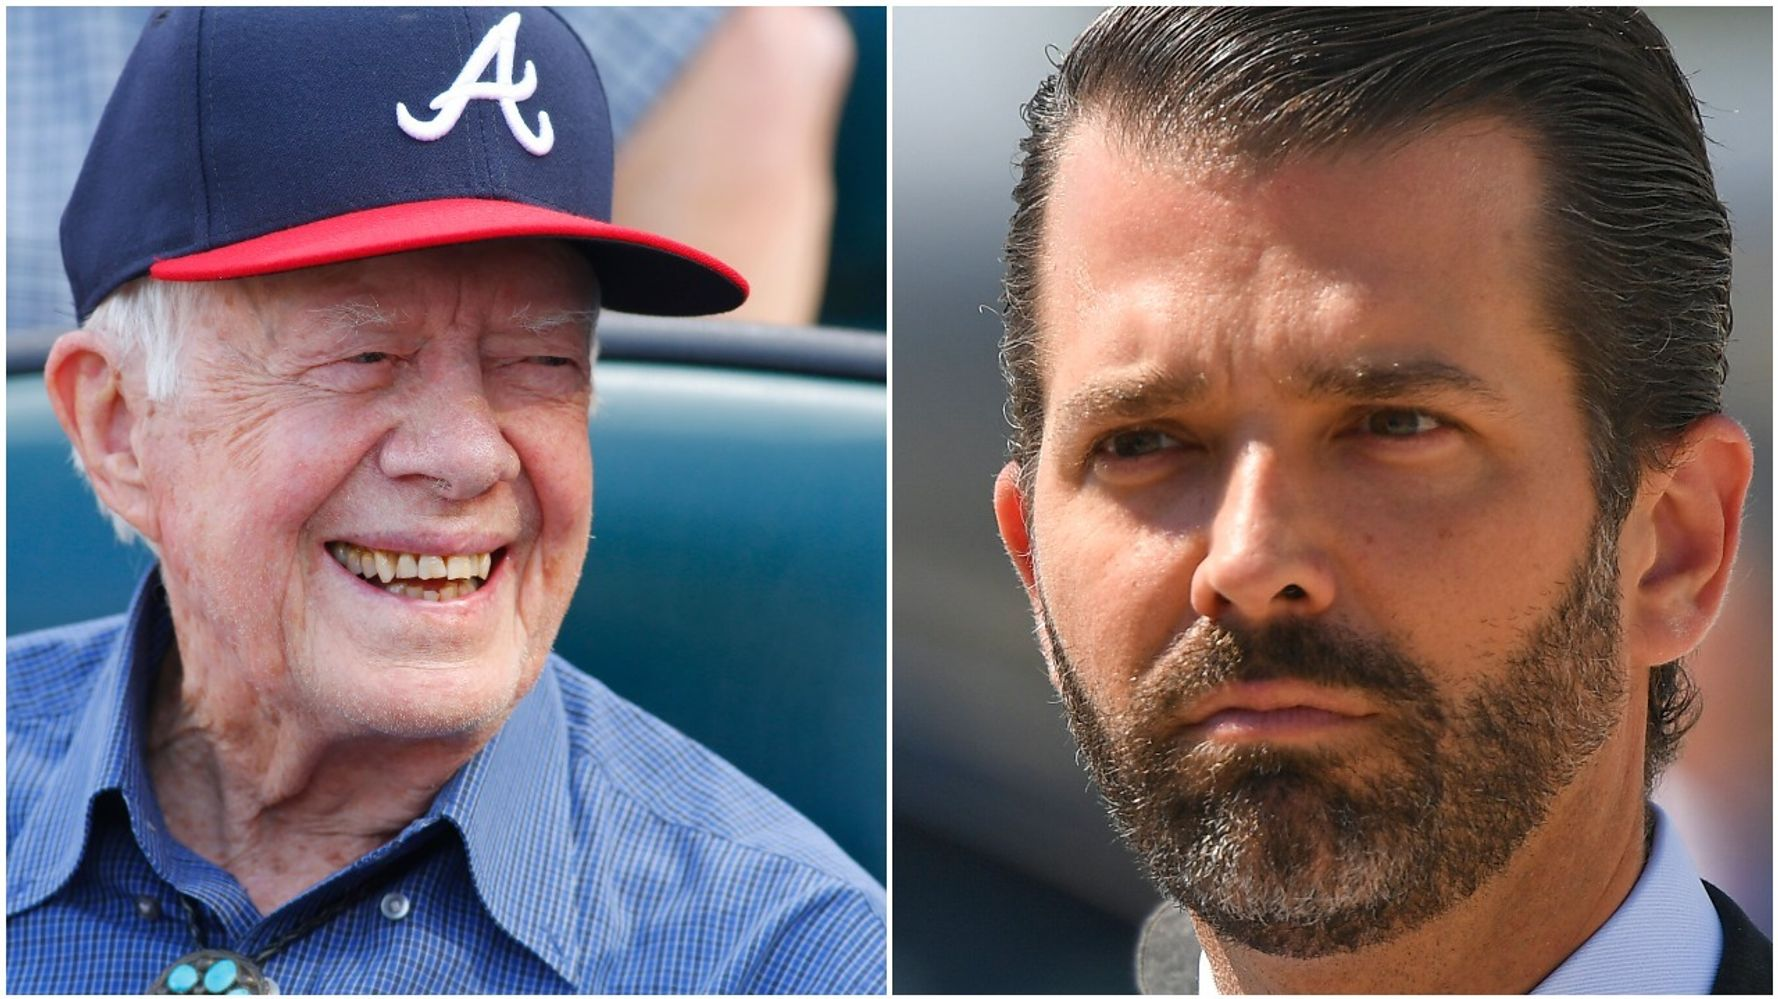 Donald Trump Jr. Miffed That Twitter Called His Jimmy Carter Tweet Confusing